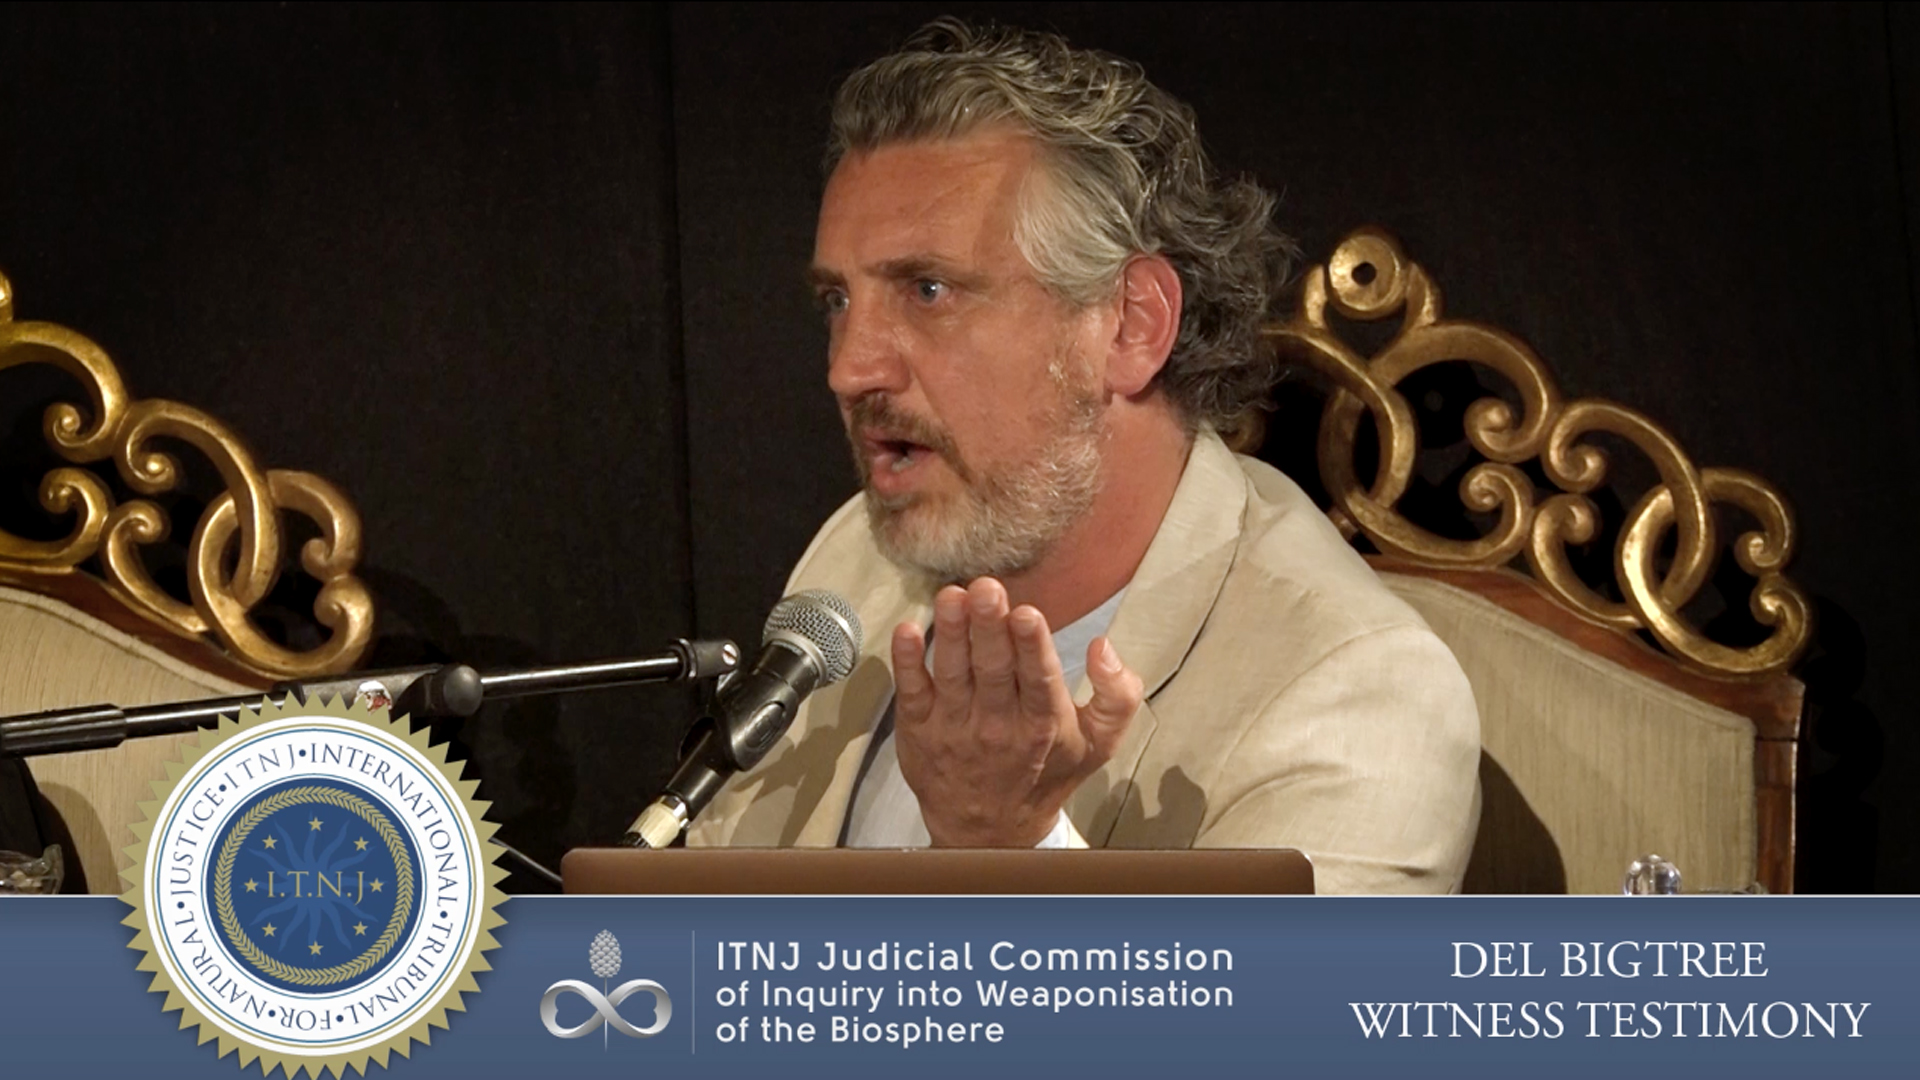 8th September, 2019 DEL BIGTREE - BIG PHARMA TESTIMONY  In association with the International Tribunal for Natural Justice (ITNJ), Balangara Films has produced many videos for the ITNJ Judicial Commission of Inquiry into the Weaponisation of the Biosphere. A sobering deposition from the Informed Consent Action Network (ICAN) founder, Del Bigtree, who has already won two lawsuits against Health & Human Services. Music credit:   Yvon Mounier     Watch Del Bigtree's FULL TESTIMONY at   https://commission.itnj.org